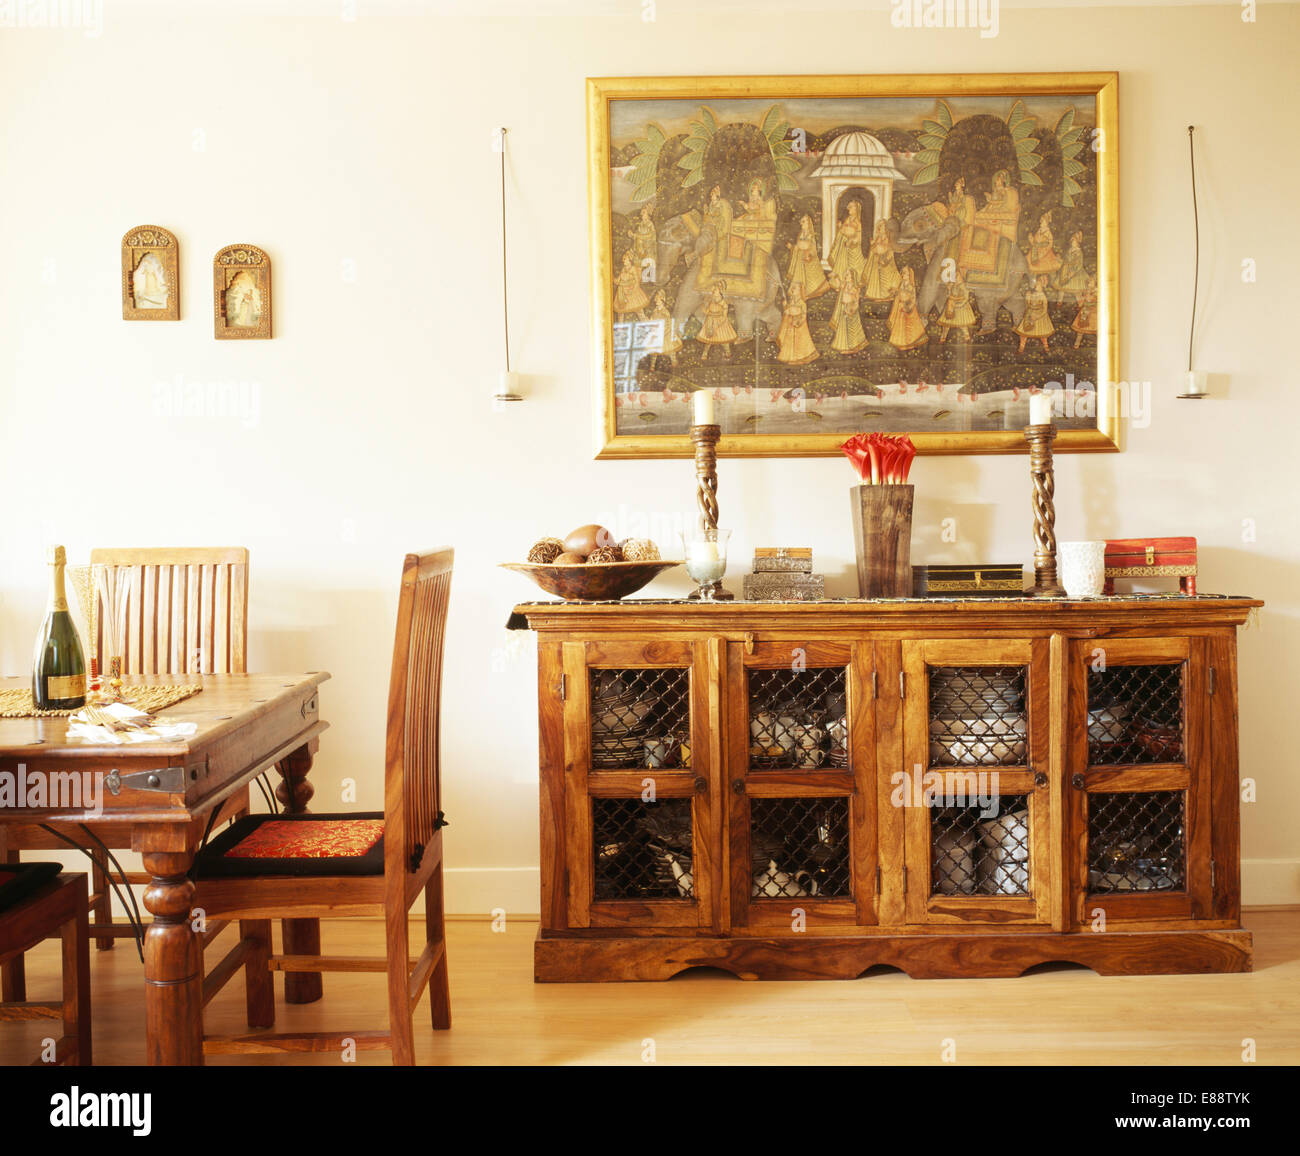 Large Indian painting above rustic wood sideboard in modern dining room - Stock Image